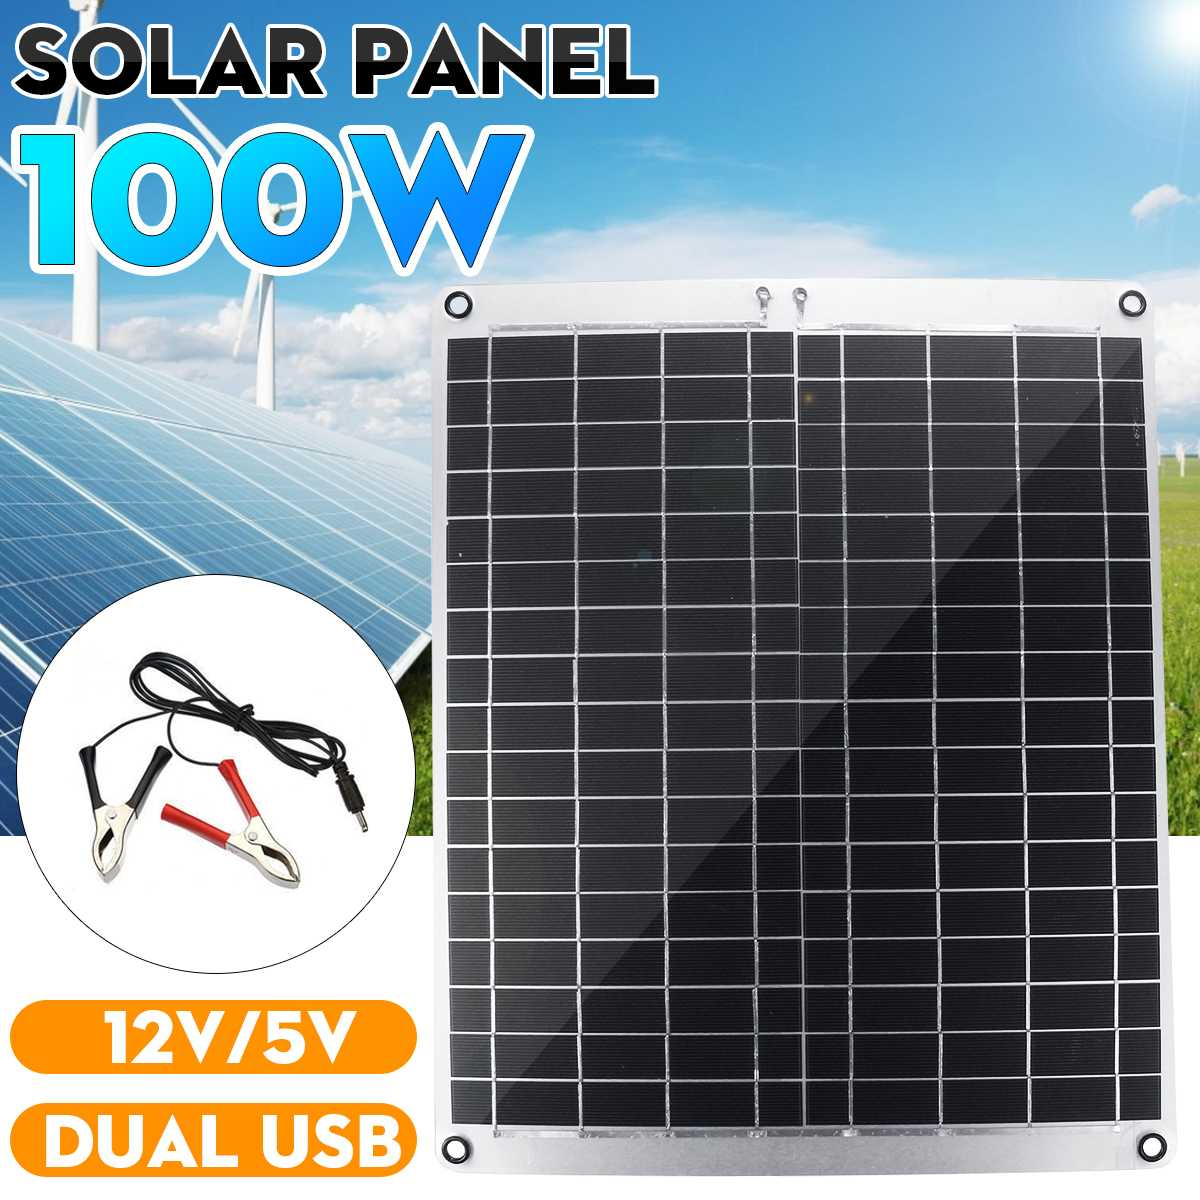 <font><b>100W</b></font> <font><b>Solar</b></font> <font><b>Panel</b></font> Efficient Dual USB Monocrystalline <font><b>Solar</b></font> Cell Module DC for Car Yacht Light RV <font><b>12V</b></font> Battery 5V Outdoor Charger image